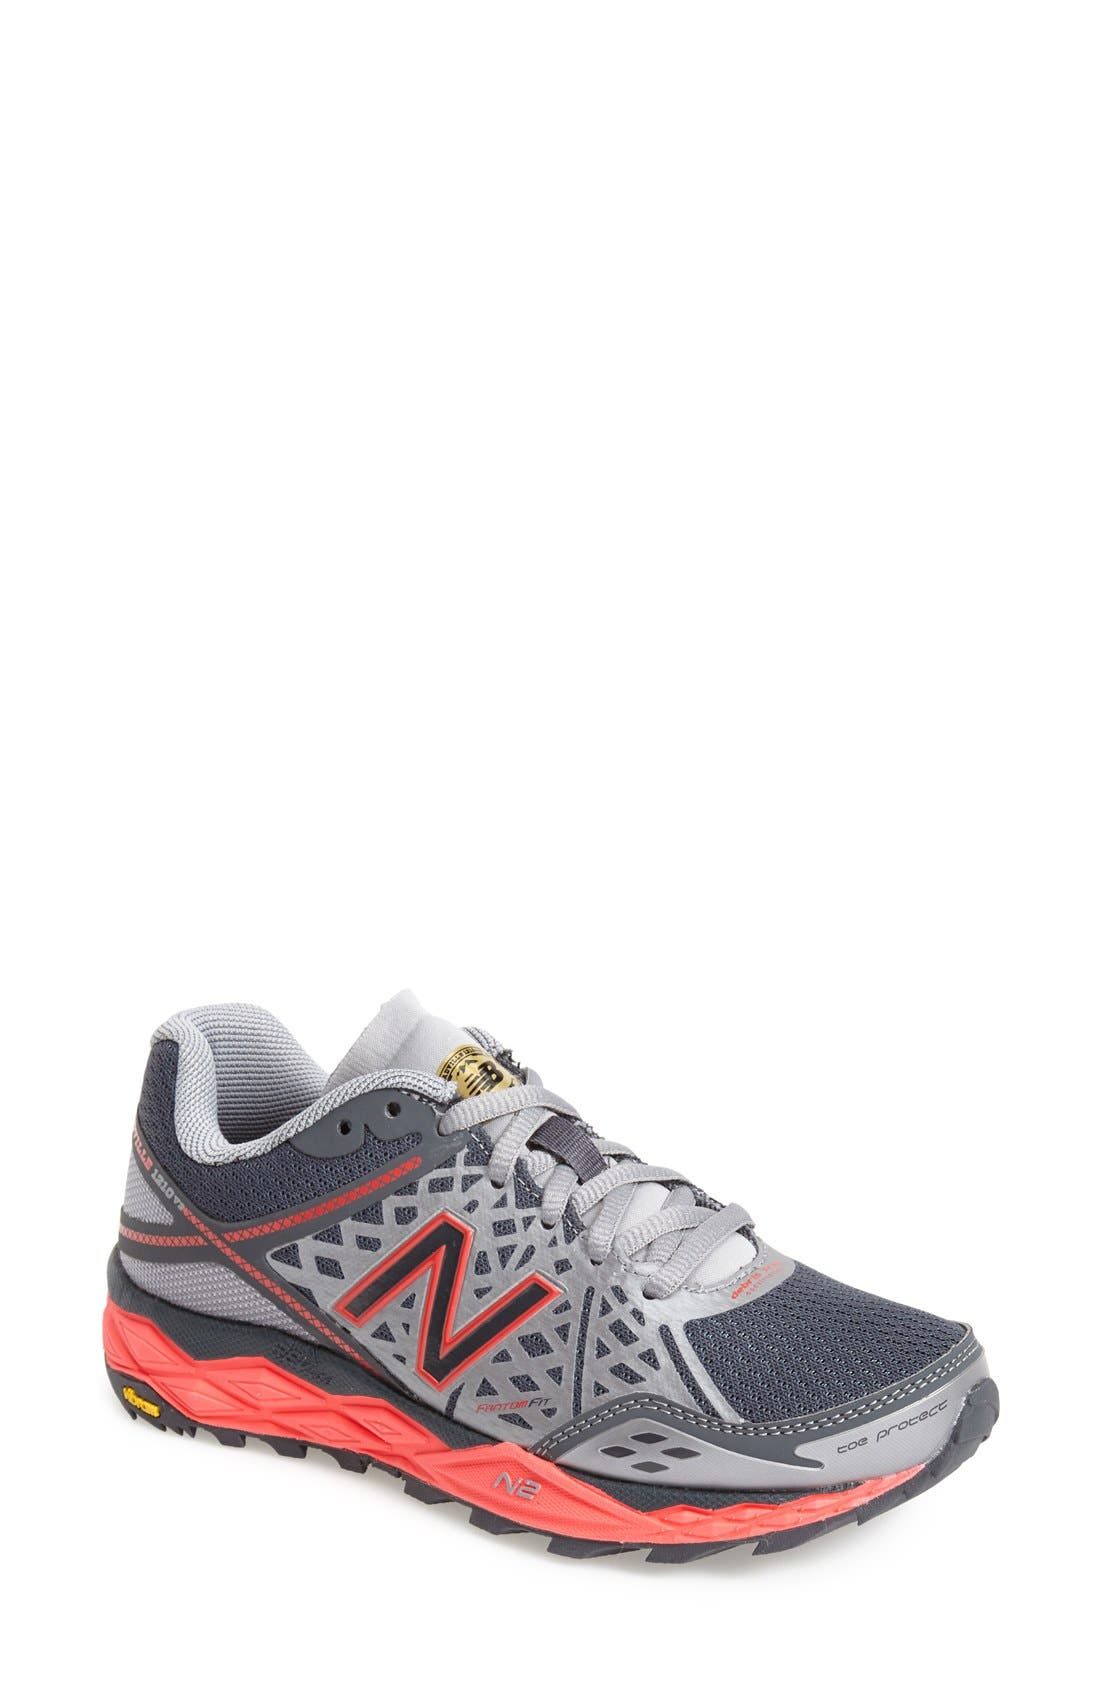 Alternate Image 1 Selected - New Balance '1210' Trail Running Shoe (Women)